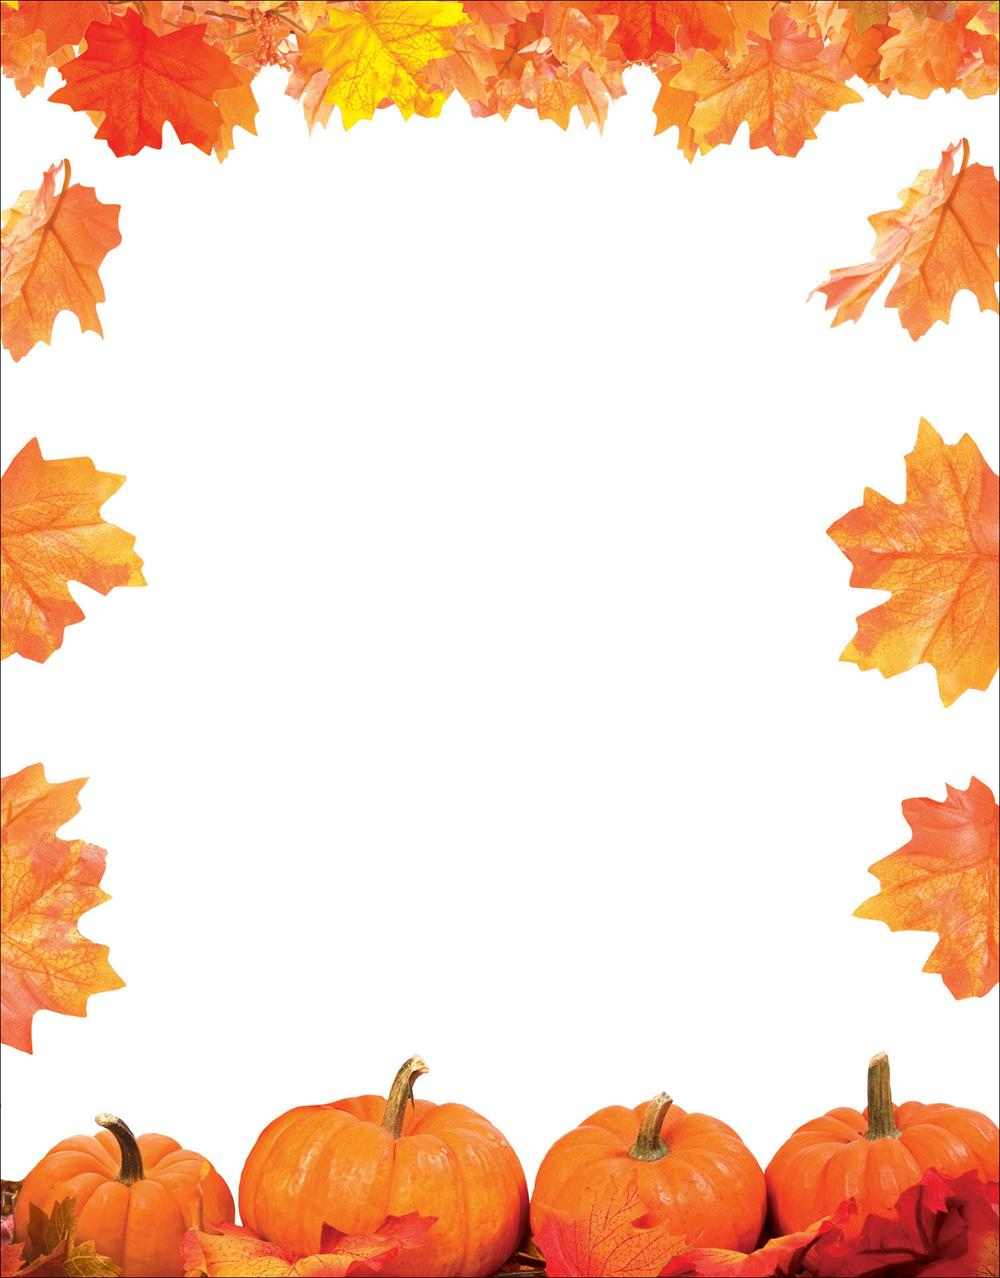 quick view slh123 pumpkin patch with leaves letterhead